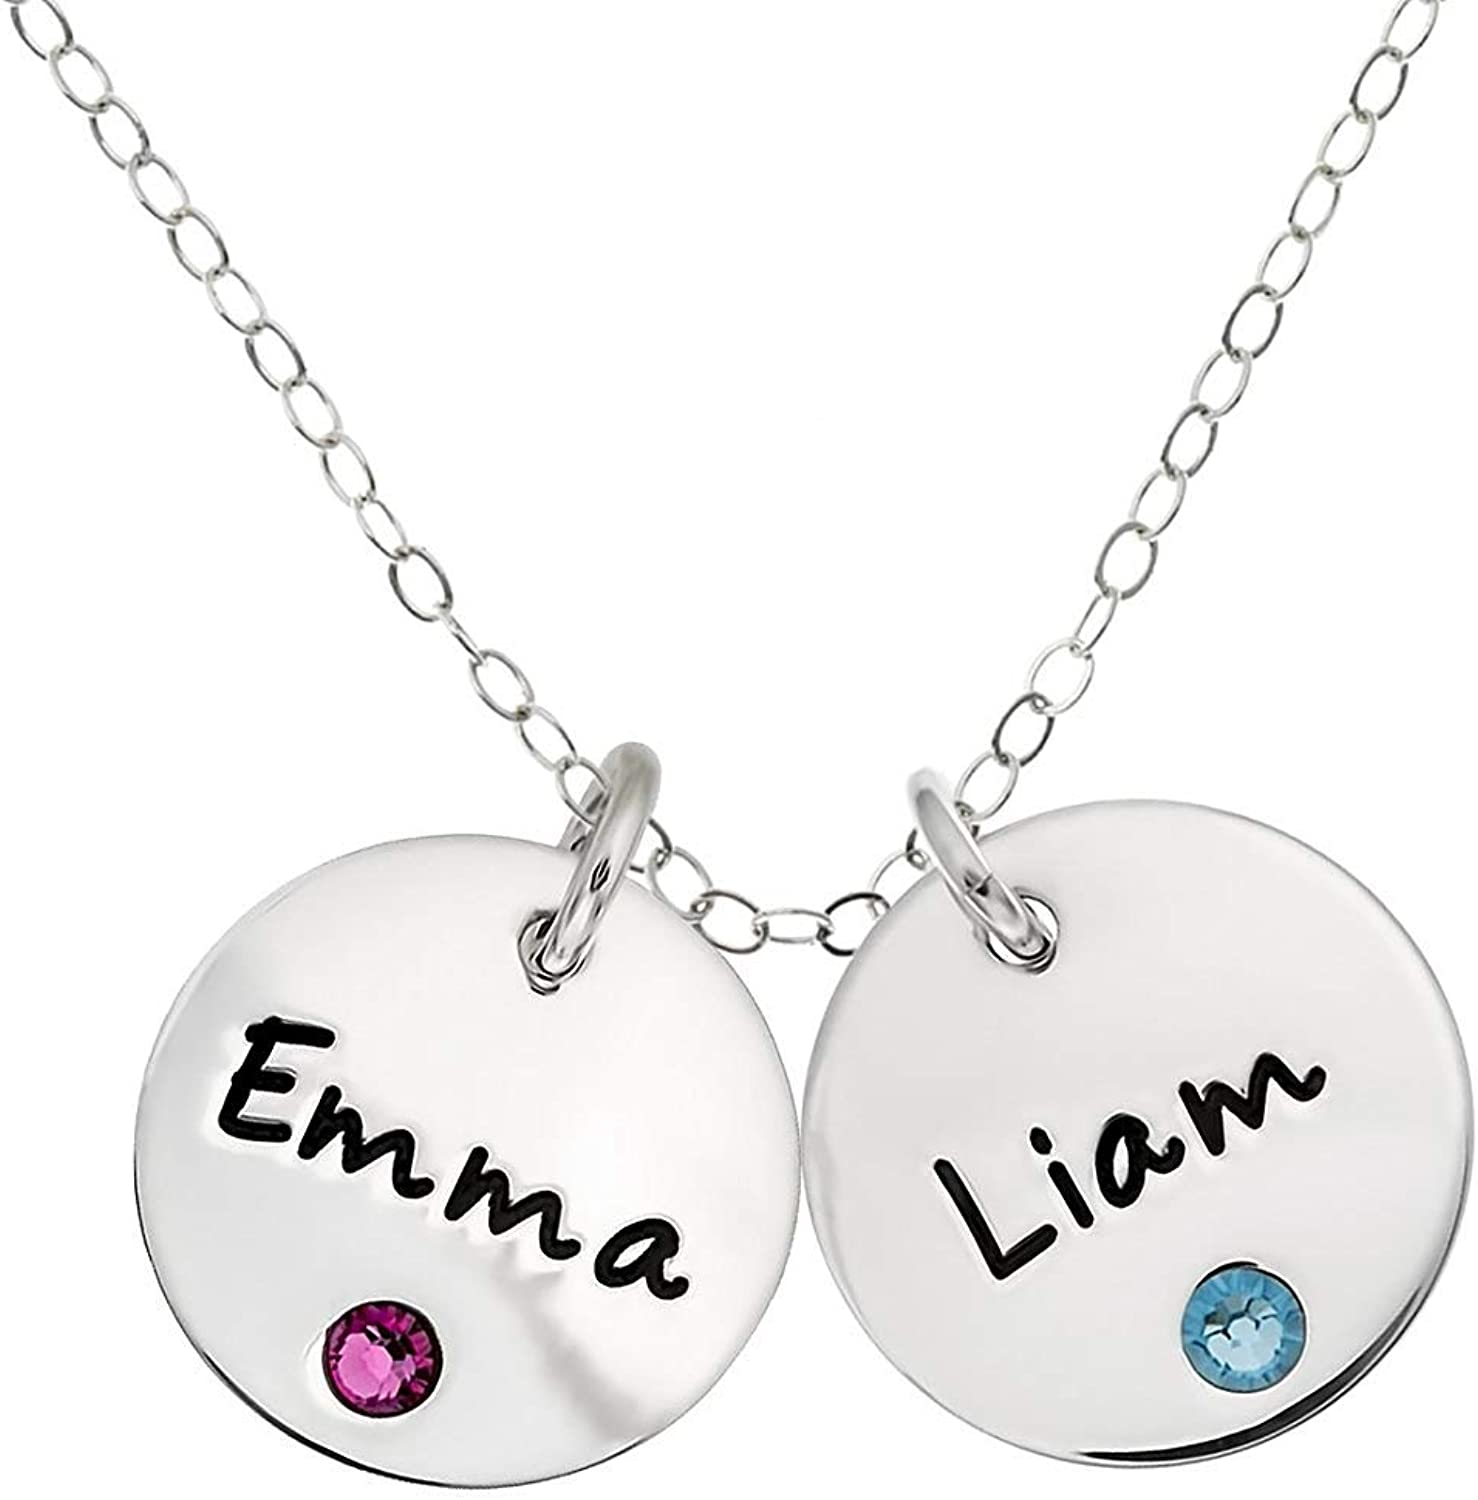 VERSUSWOLF Personalized 925 Sterling Silver Double Custom Name Necklace Pendant with Birthstone Settings